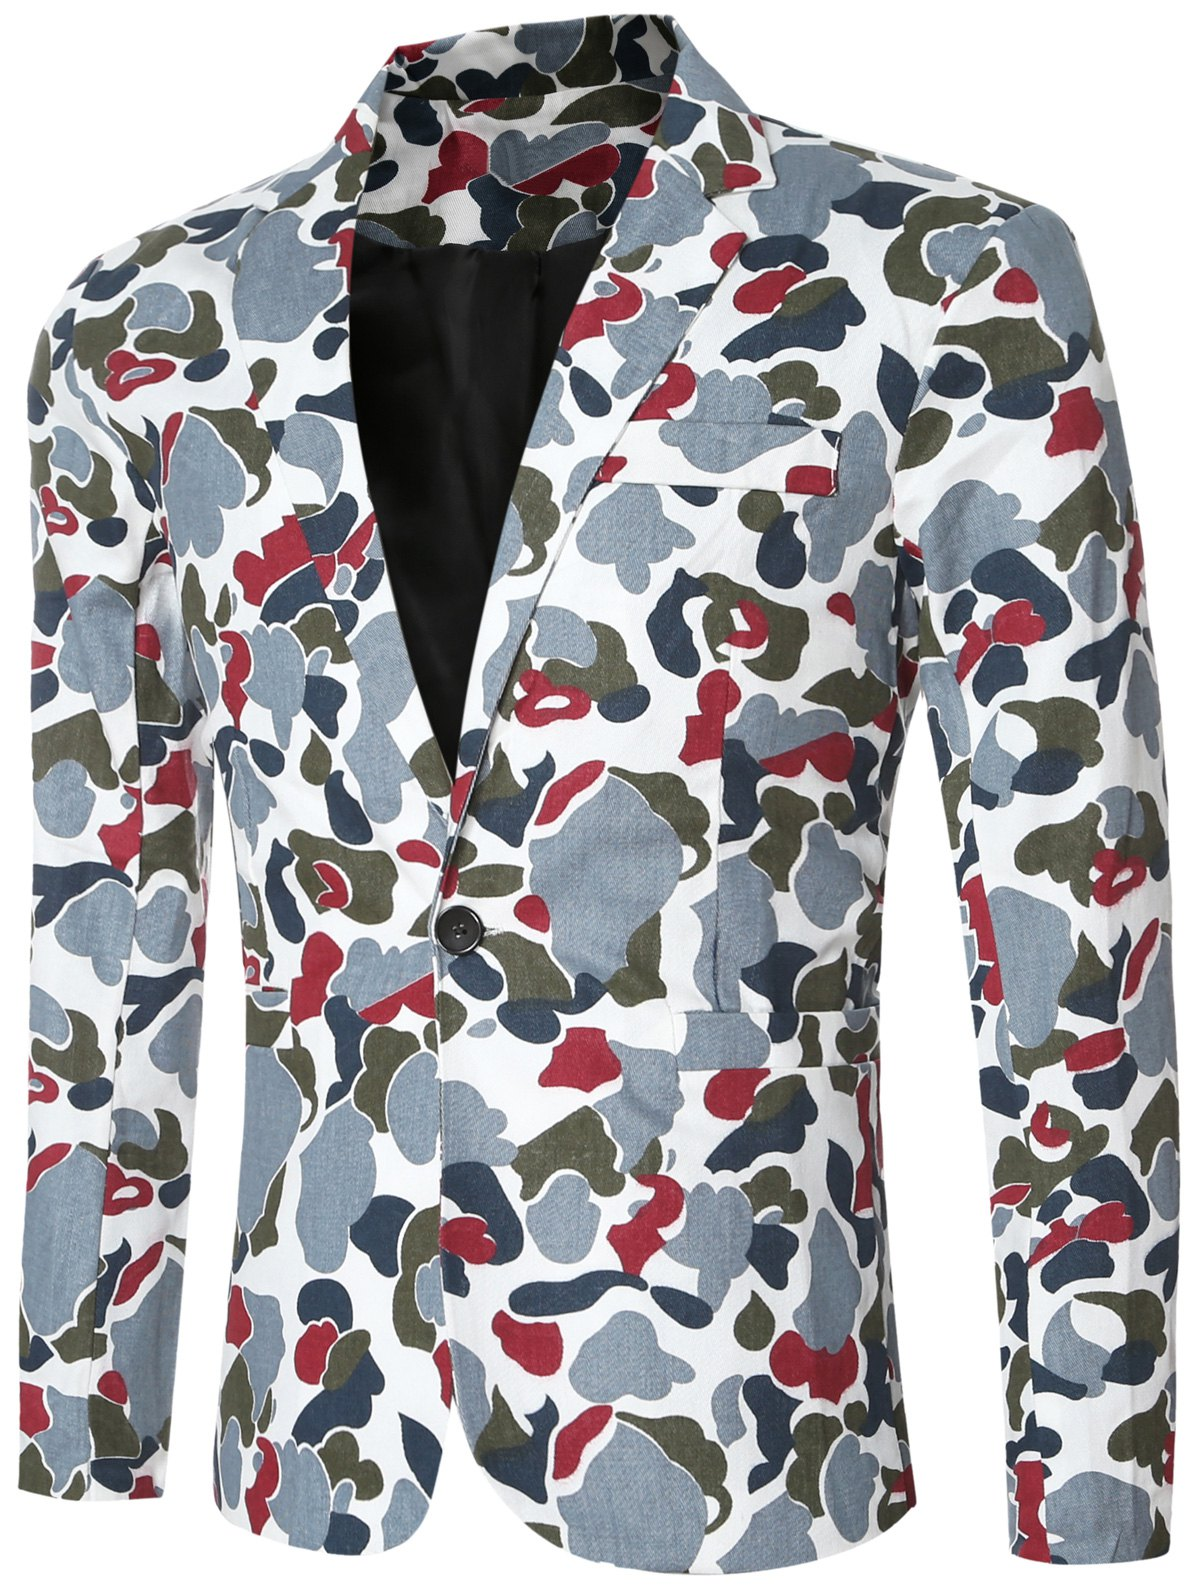 Single Button Opening Notched Lapel Collar Camo Bomber Blazer For Men мебельные петли скобы замки dorabeads jewelry hingesantique 6 5 6 x 4 1 10 2015 b56362